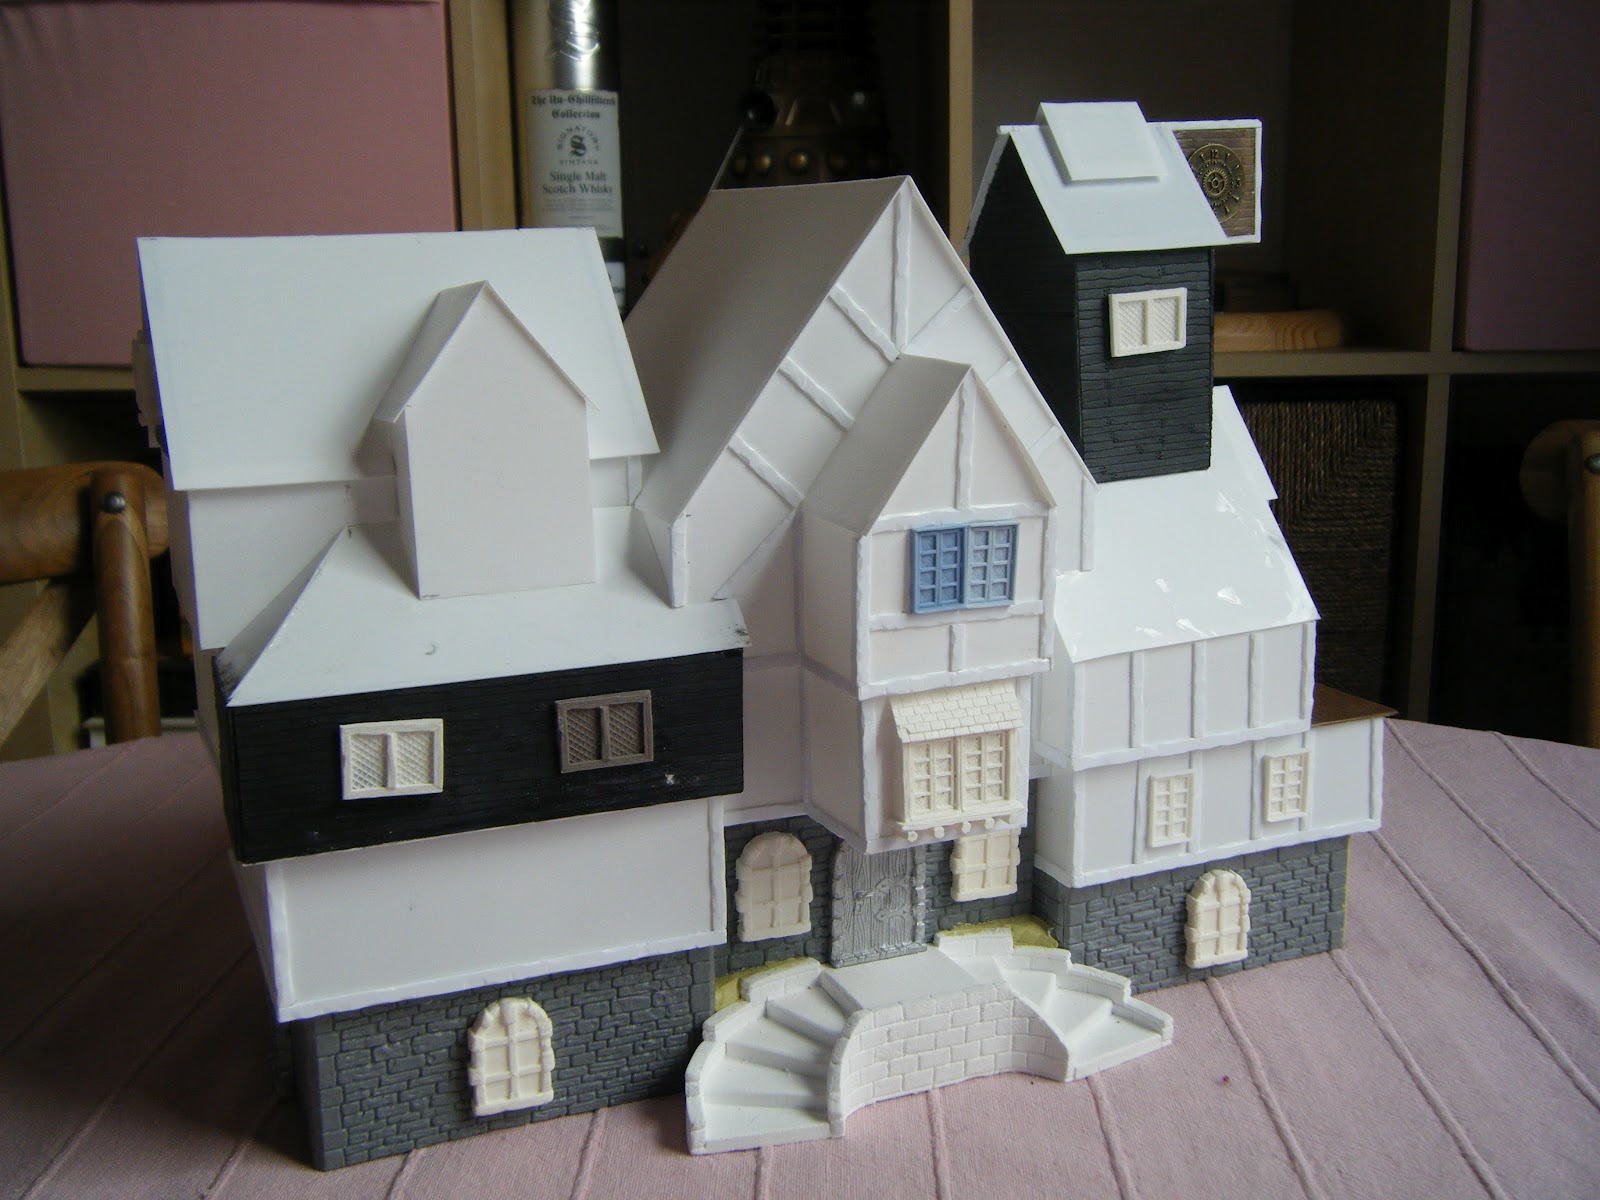 house - Excise House 021